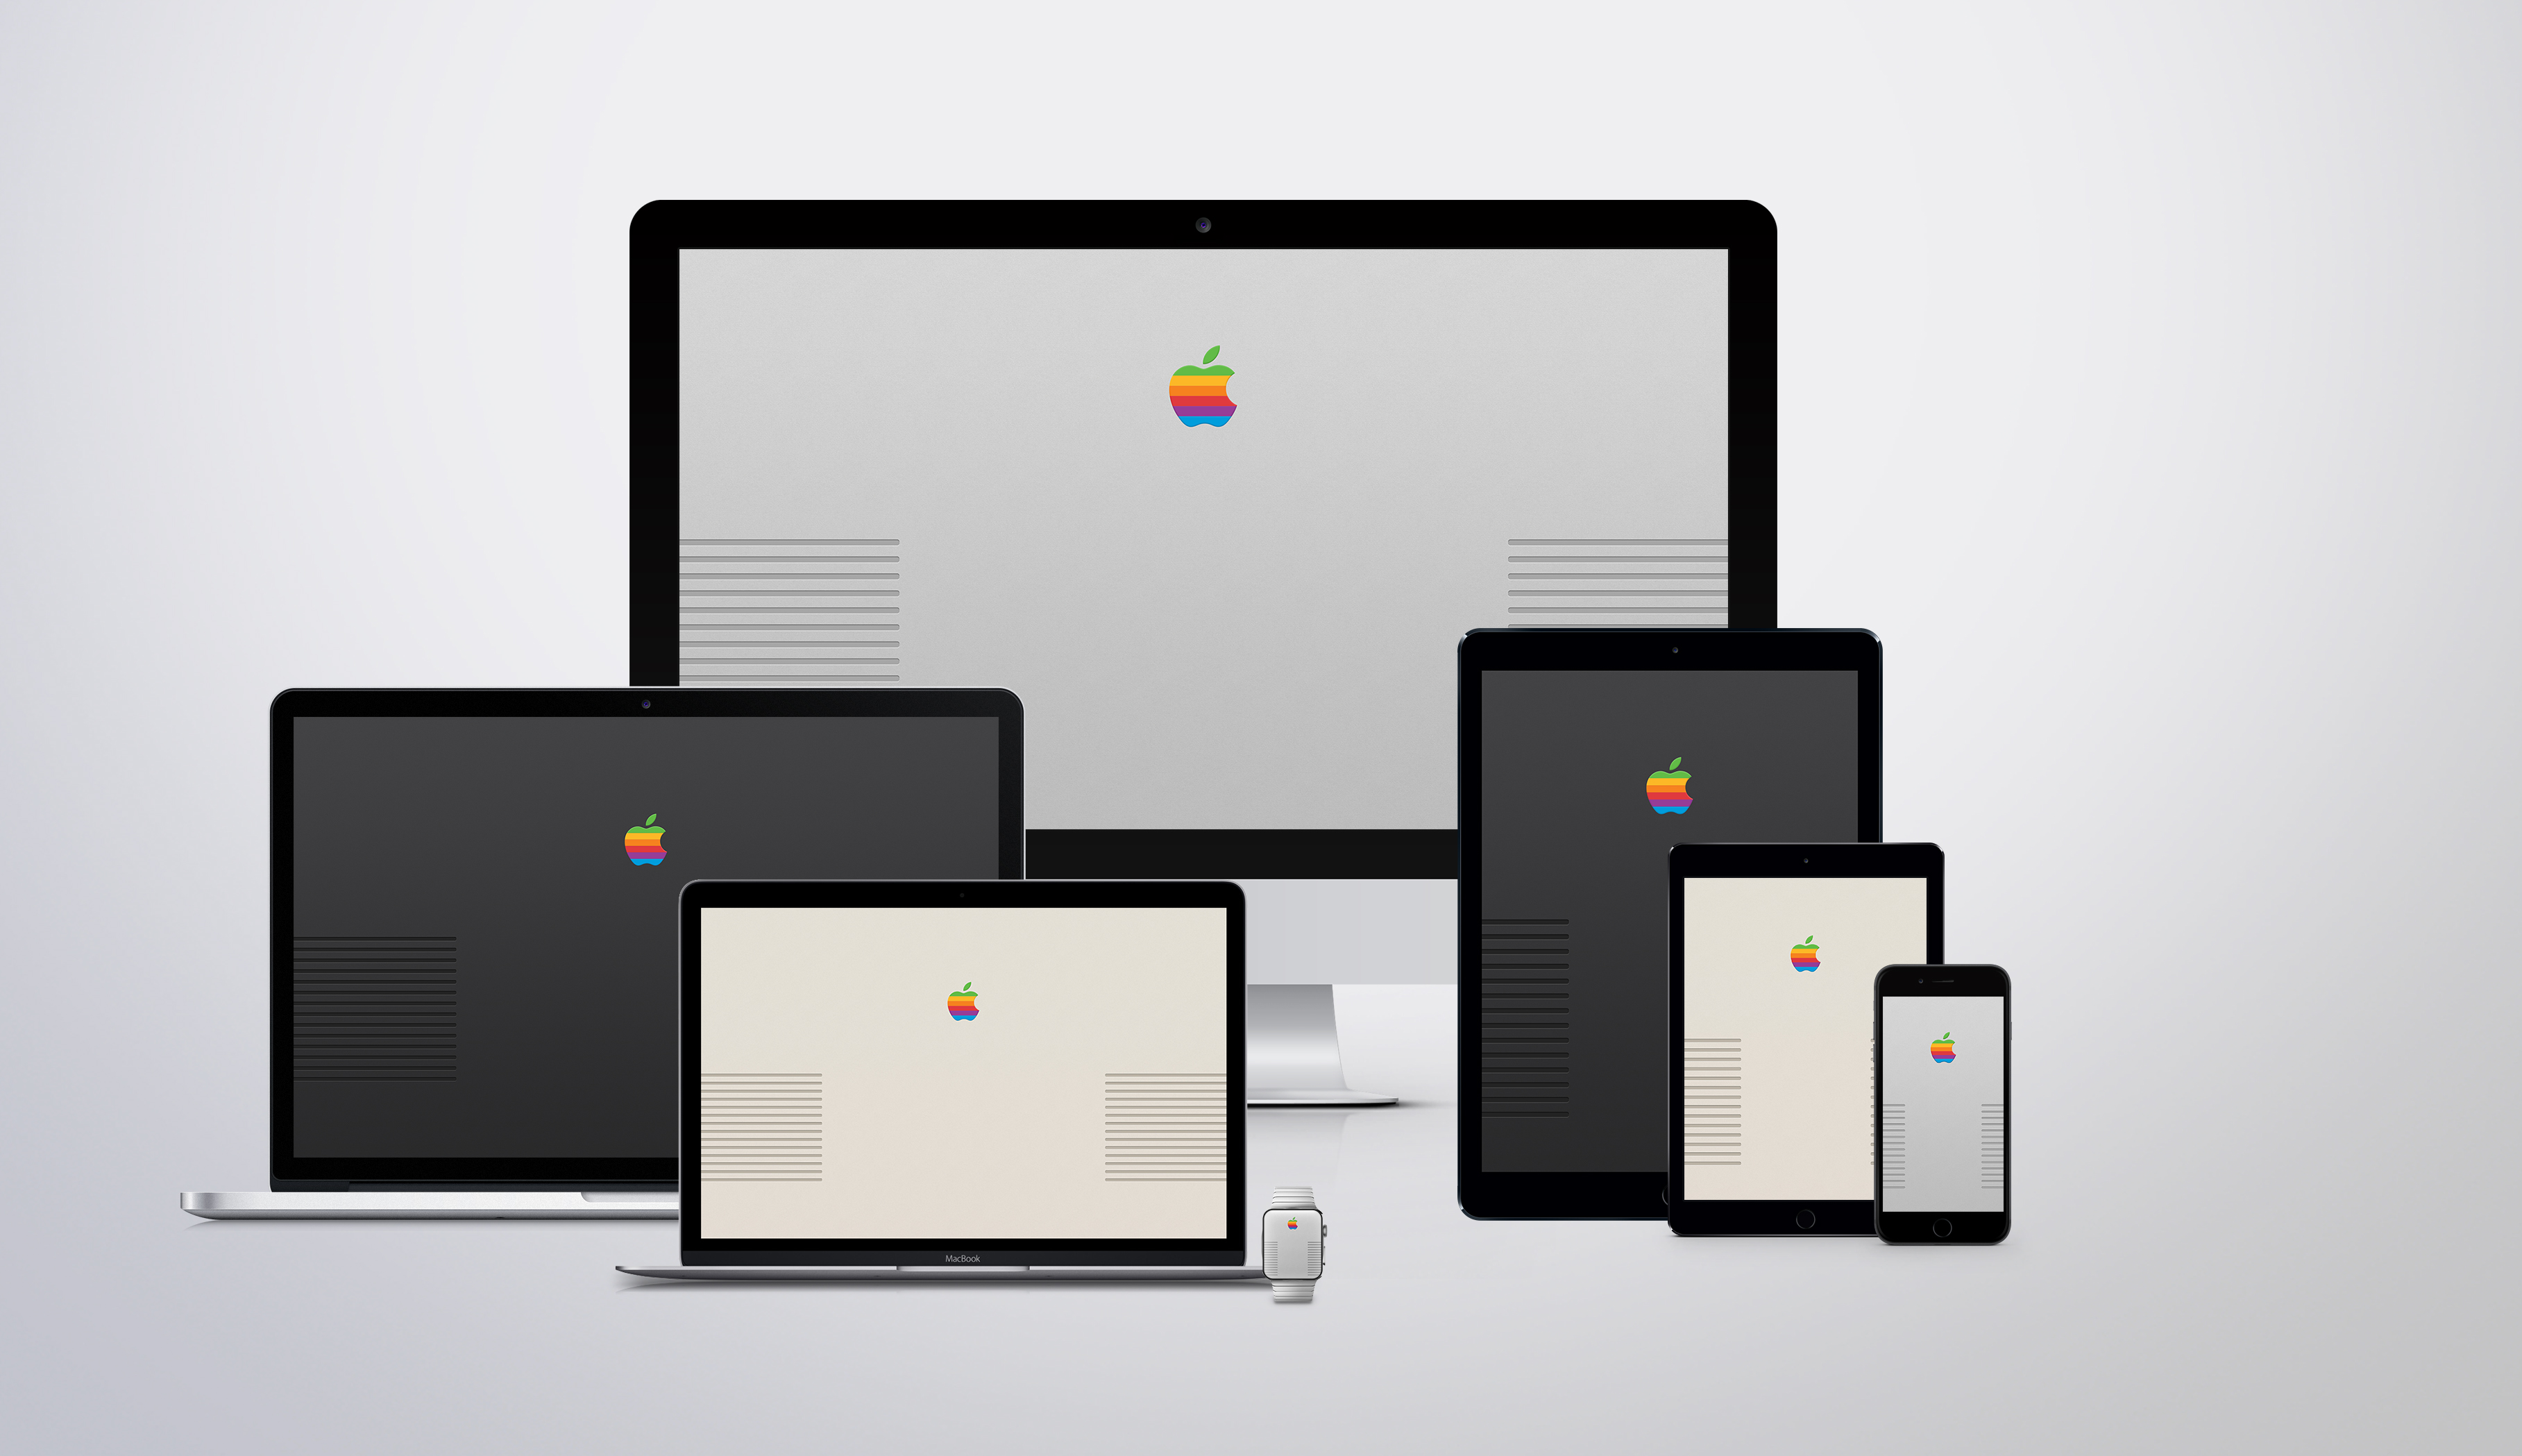 retro apple wallpapersjasonzigrino on deviantart